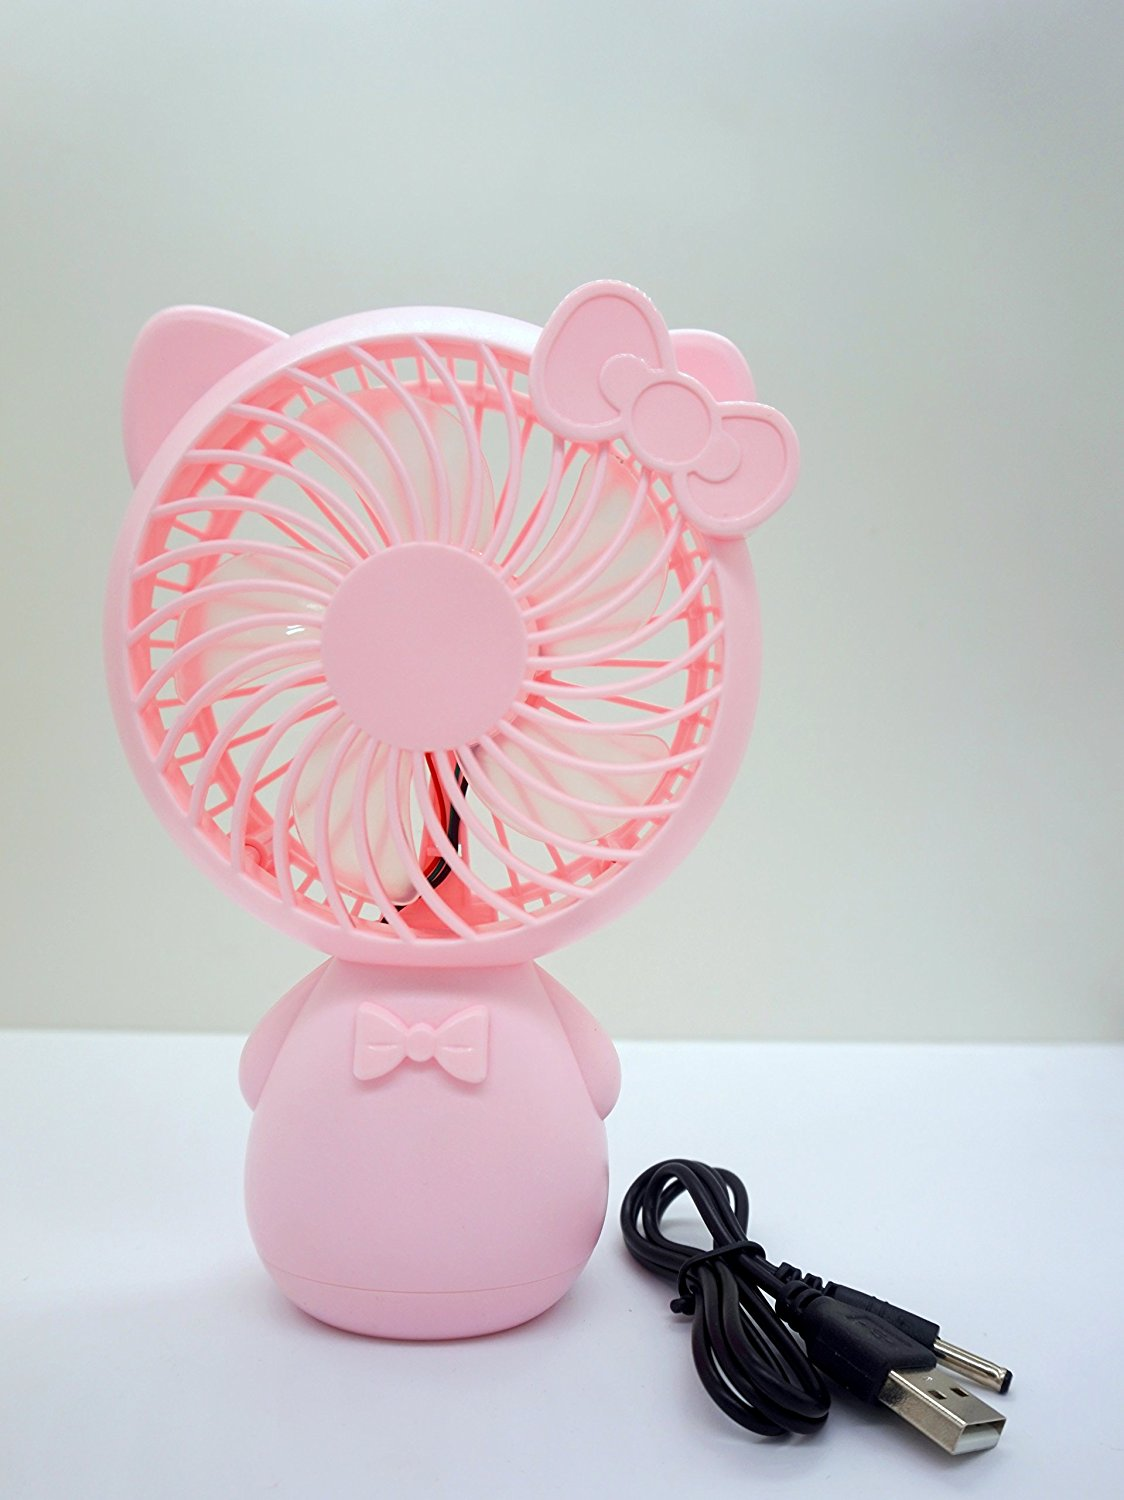 YOLOPLUS Portable Mini Cooling Fan Multipurpose Low Noise Blower Handheld Outdoor Fan with Rechargeable Battery USB Powered for Babies & School Kids Office Desktop PC Laptop and Travel (Kitty Pink)